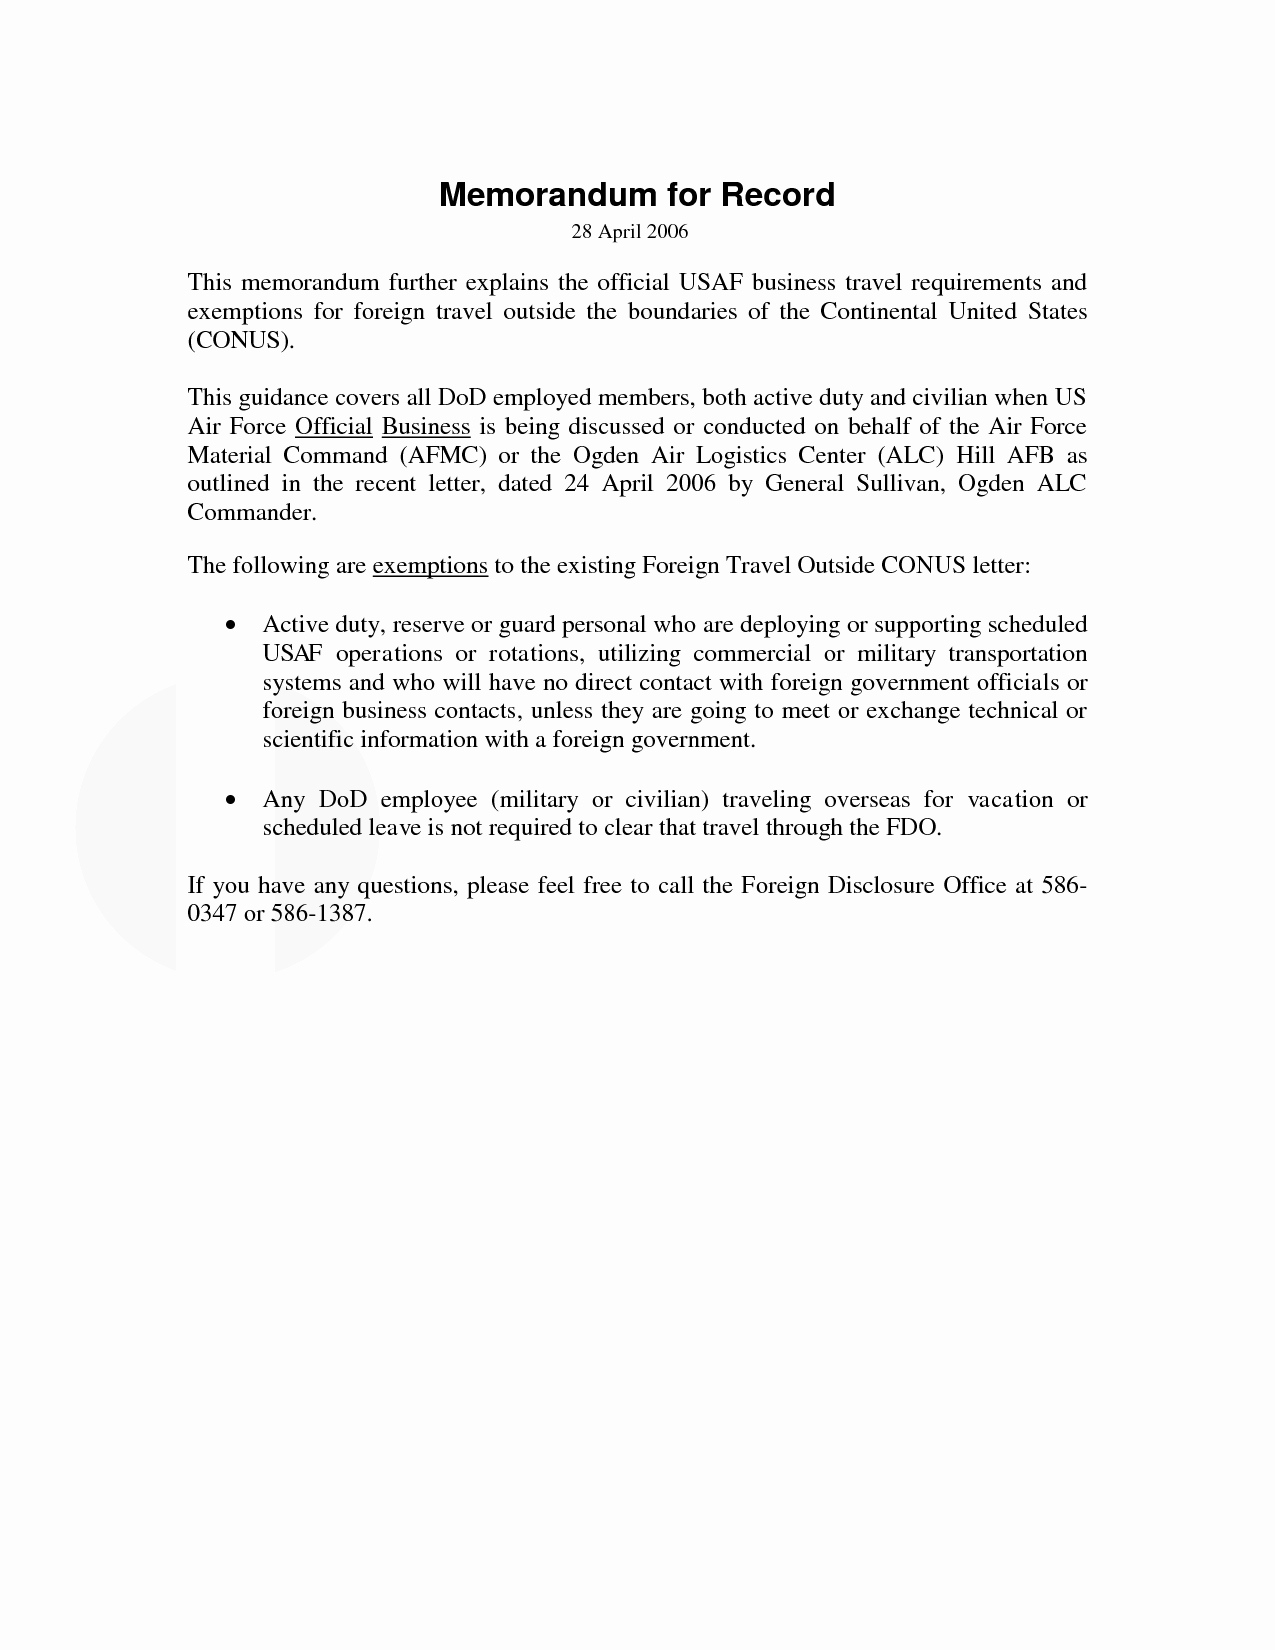 Memo for Record Template Awesome 10 Best Of Memorandum for Record Example Army